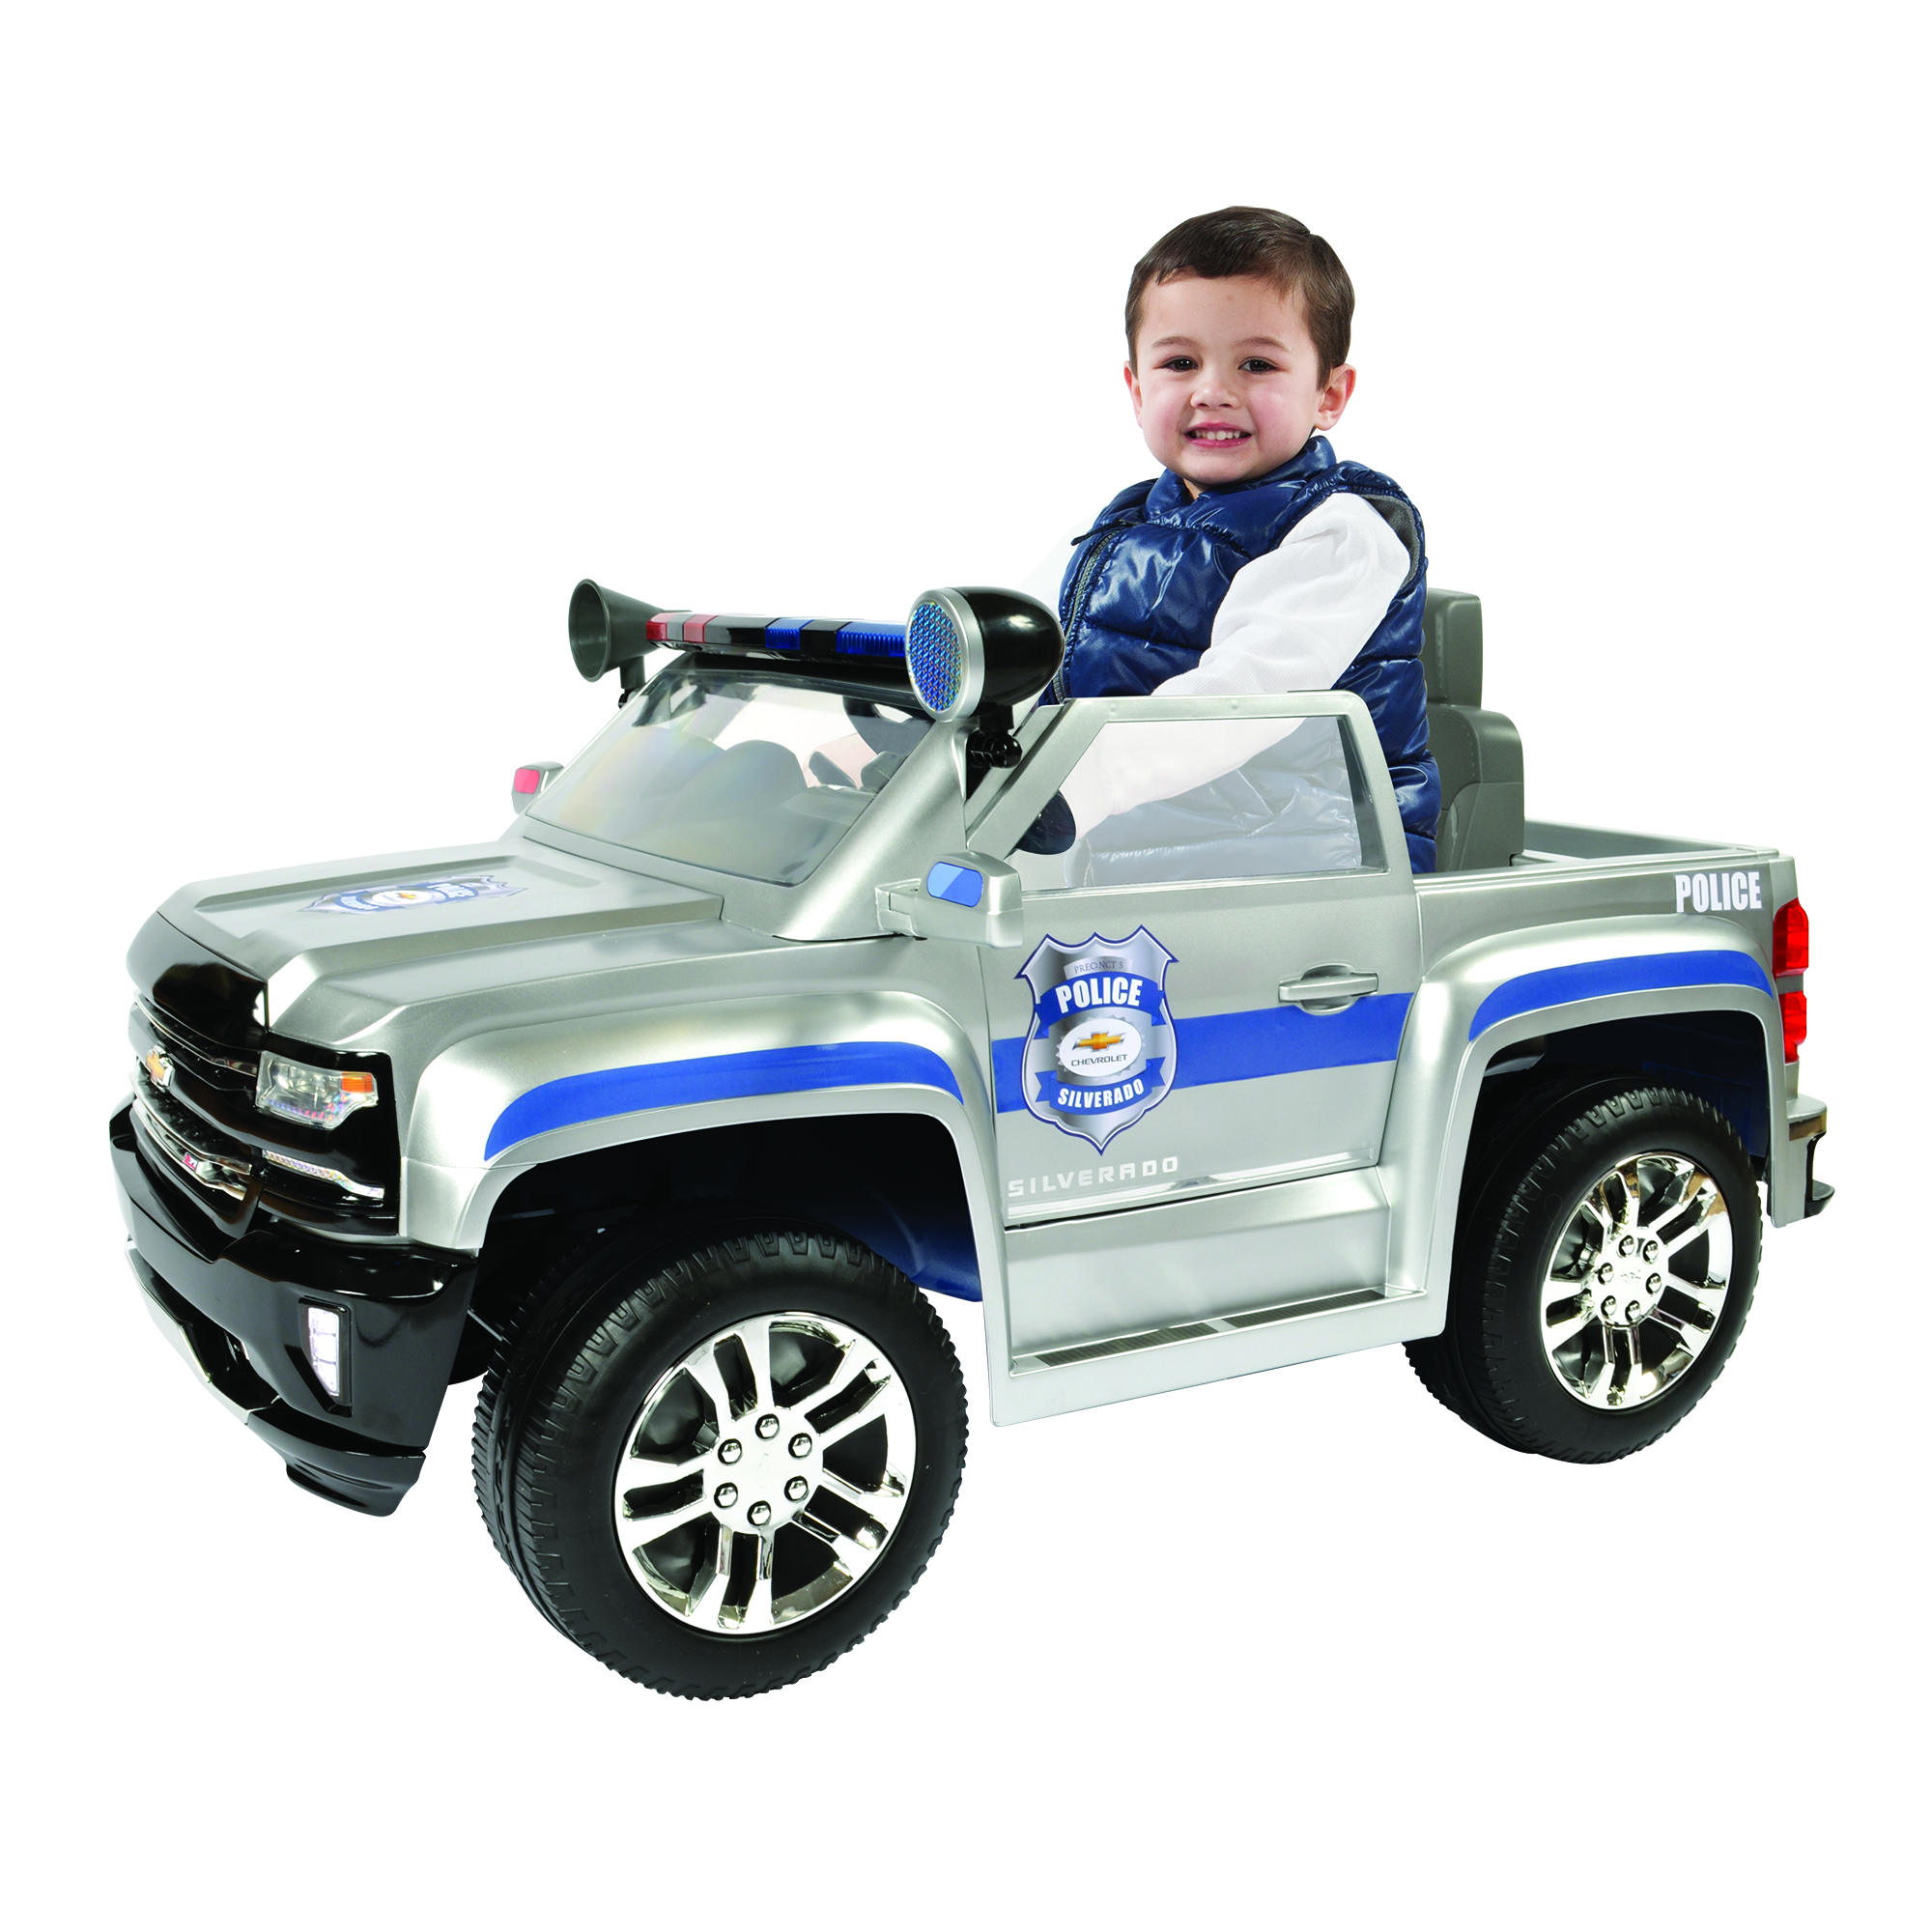 Rollplay 6 Volt Chevy Silverado Police Truck Ride On Toy, Battery-Powered Kid's Ride On Car by Aria Child